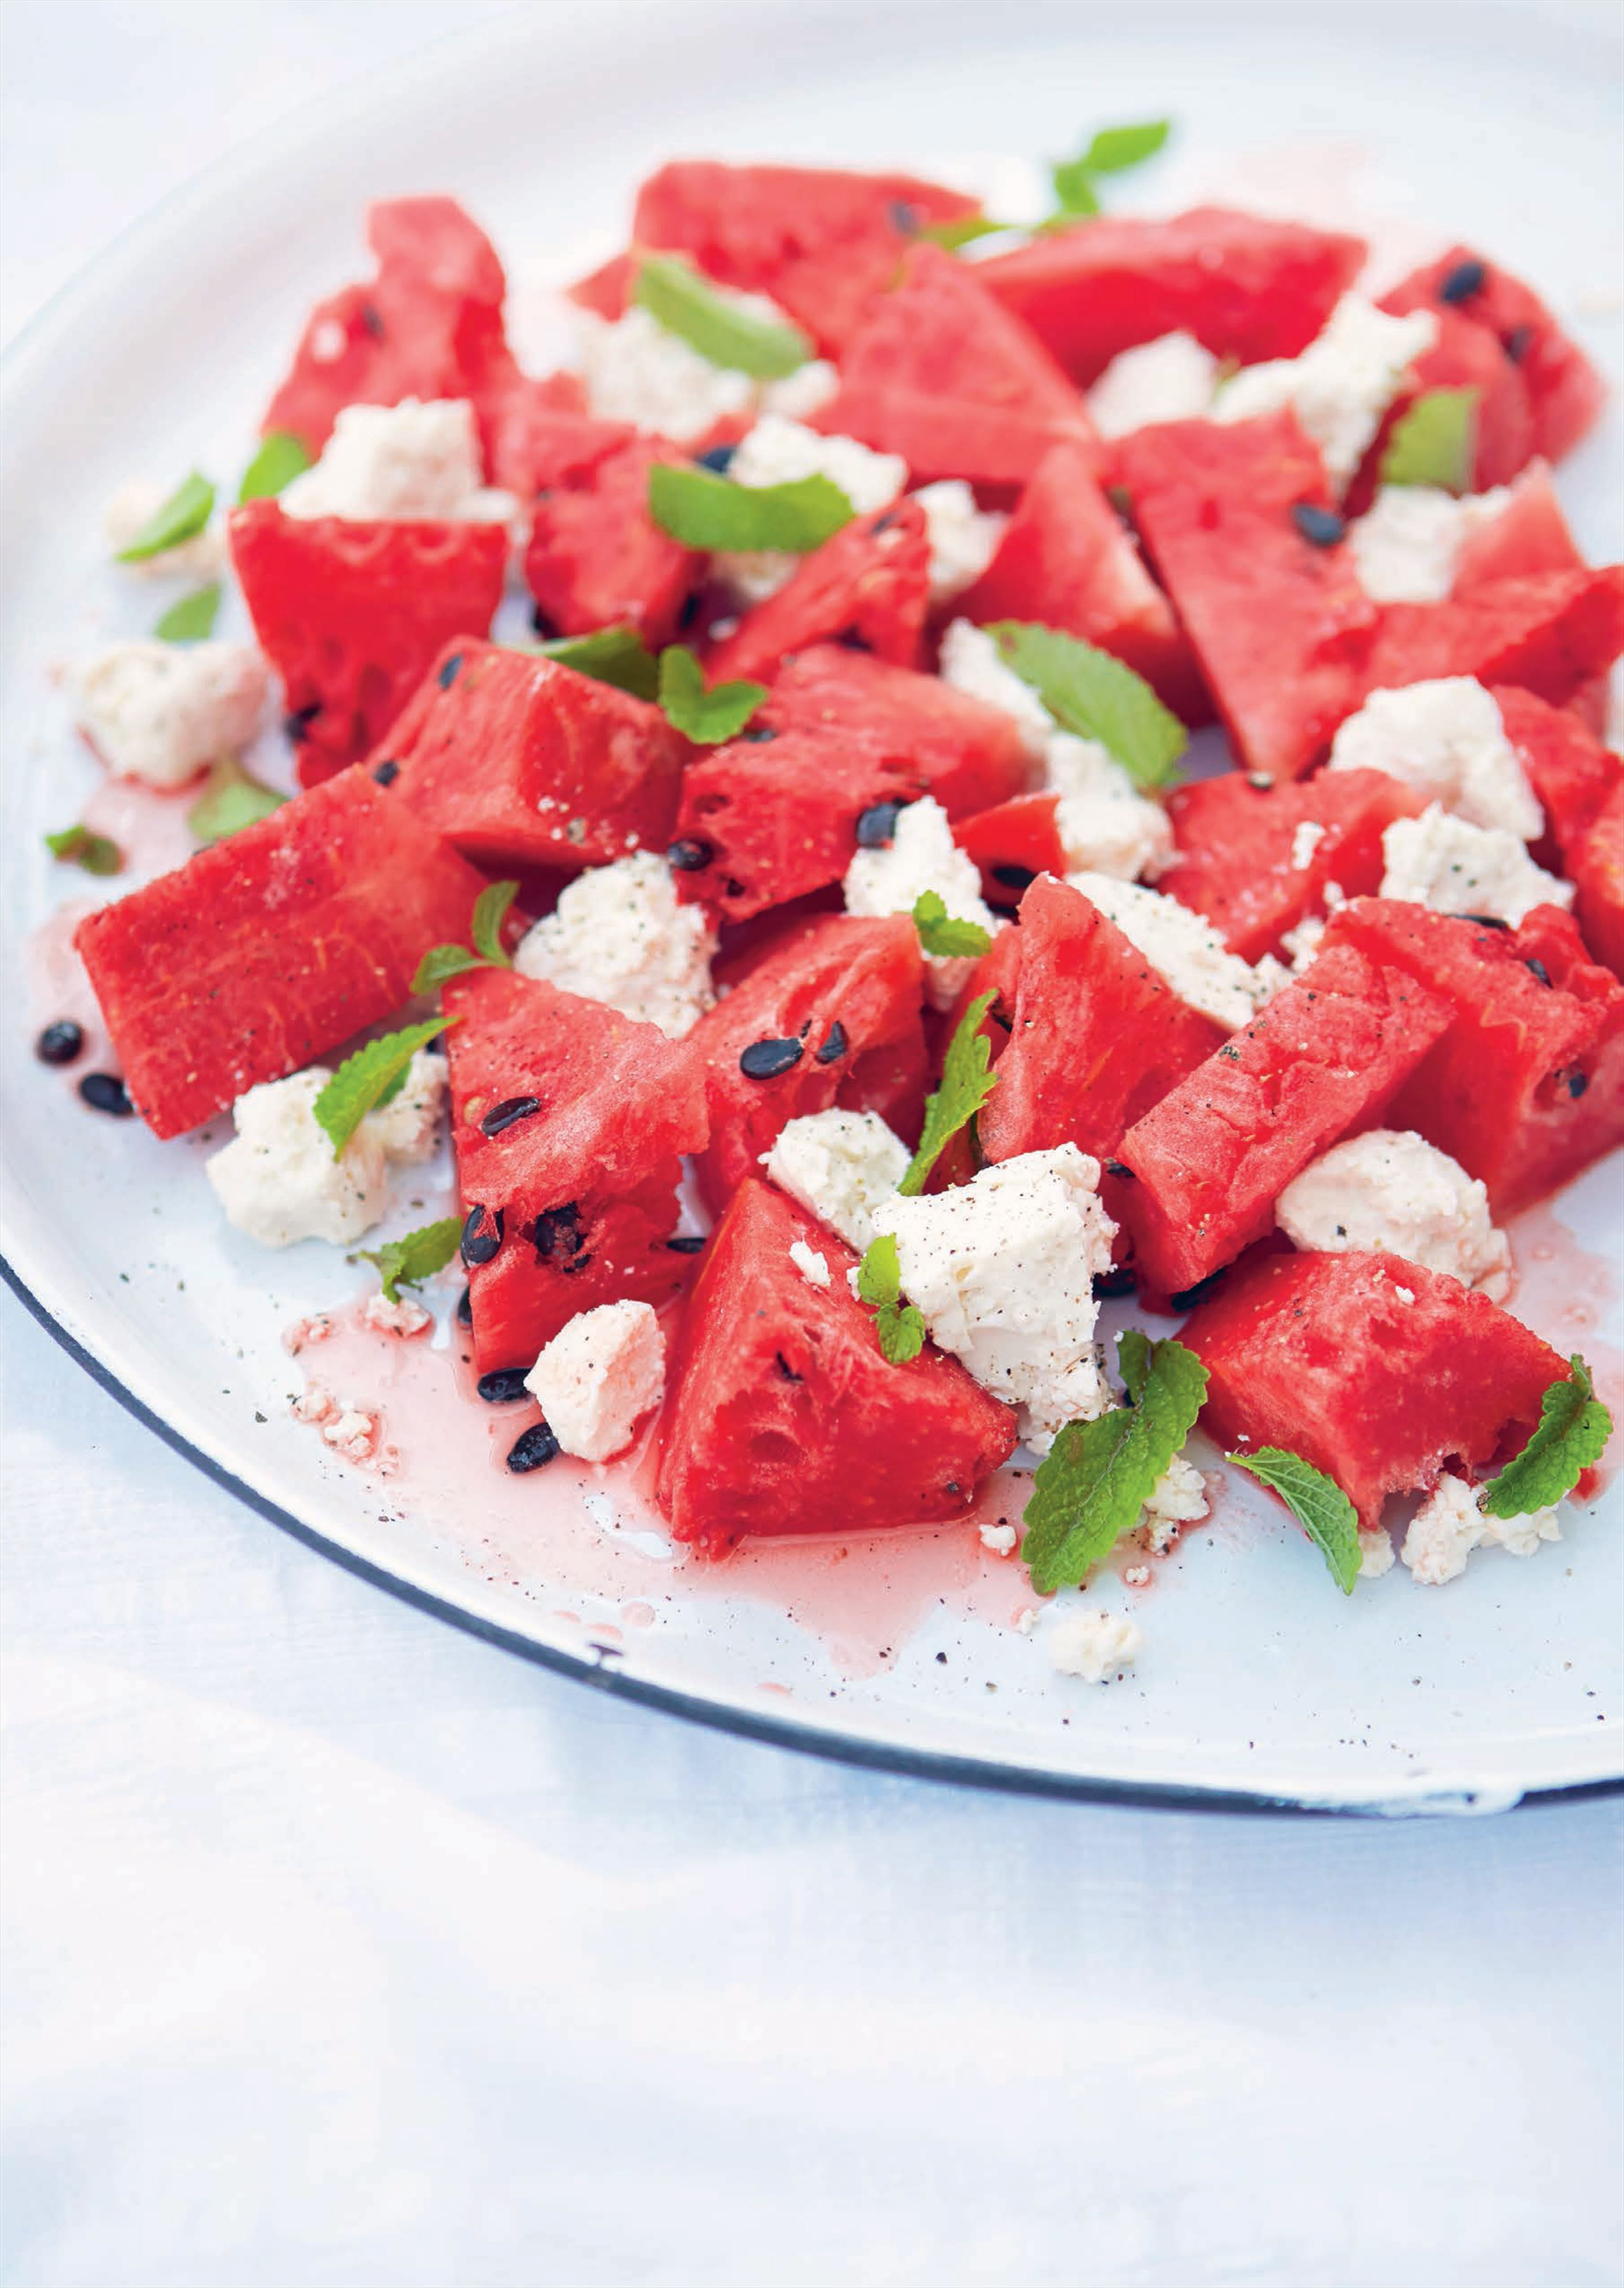 Watermelon with white cheese